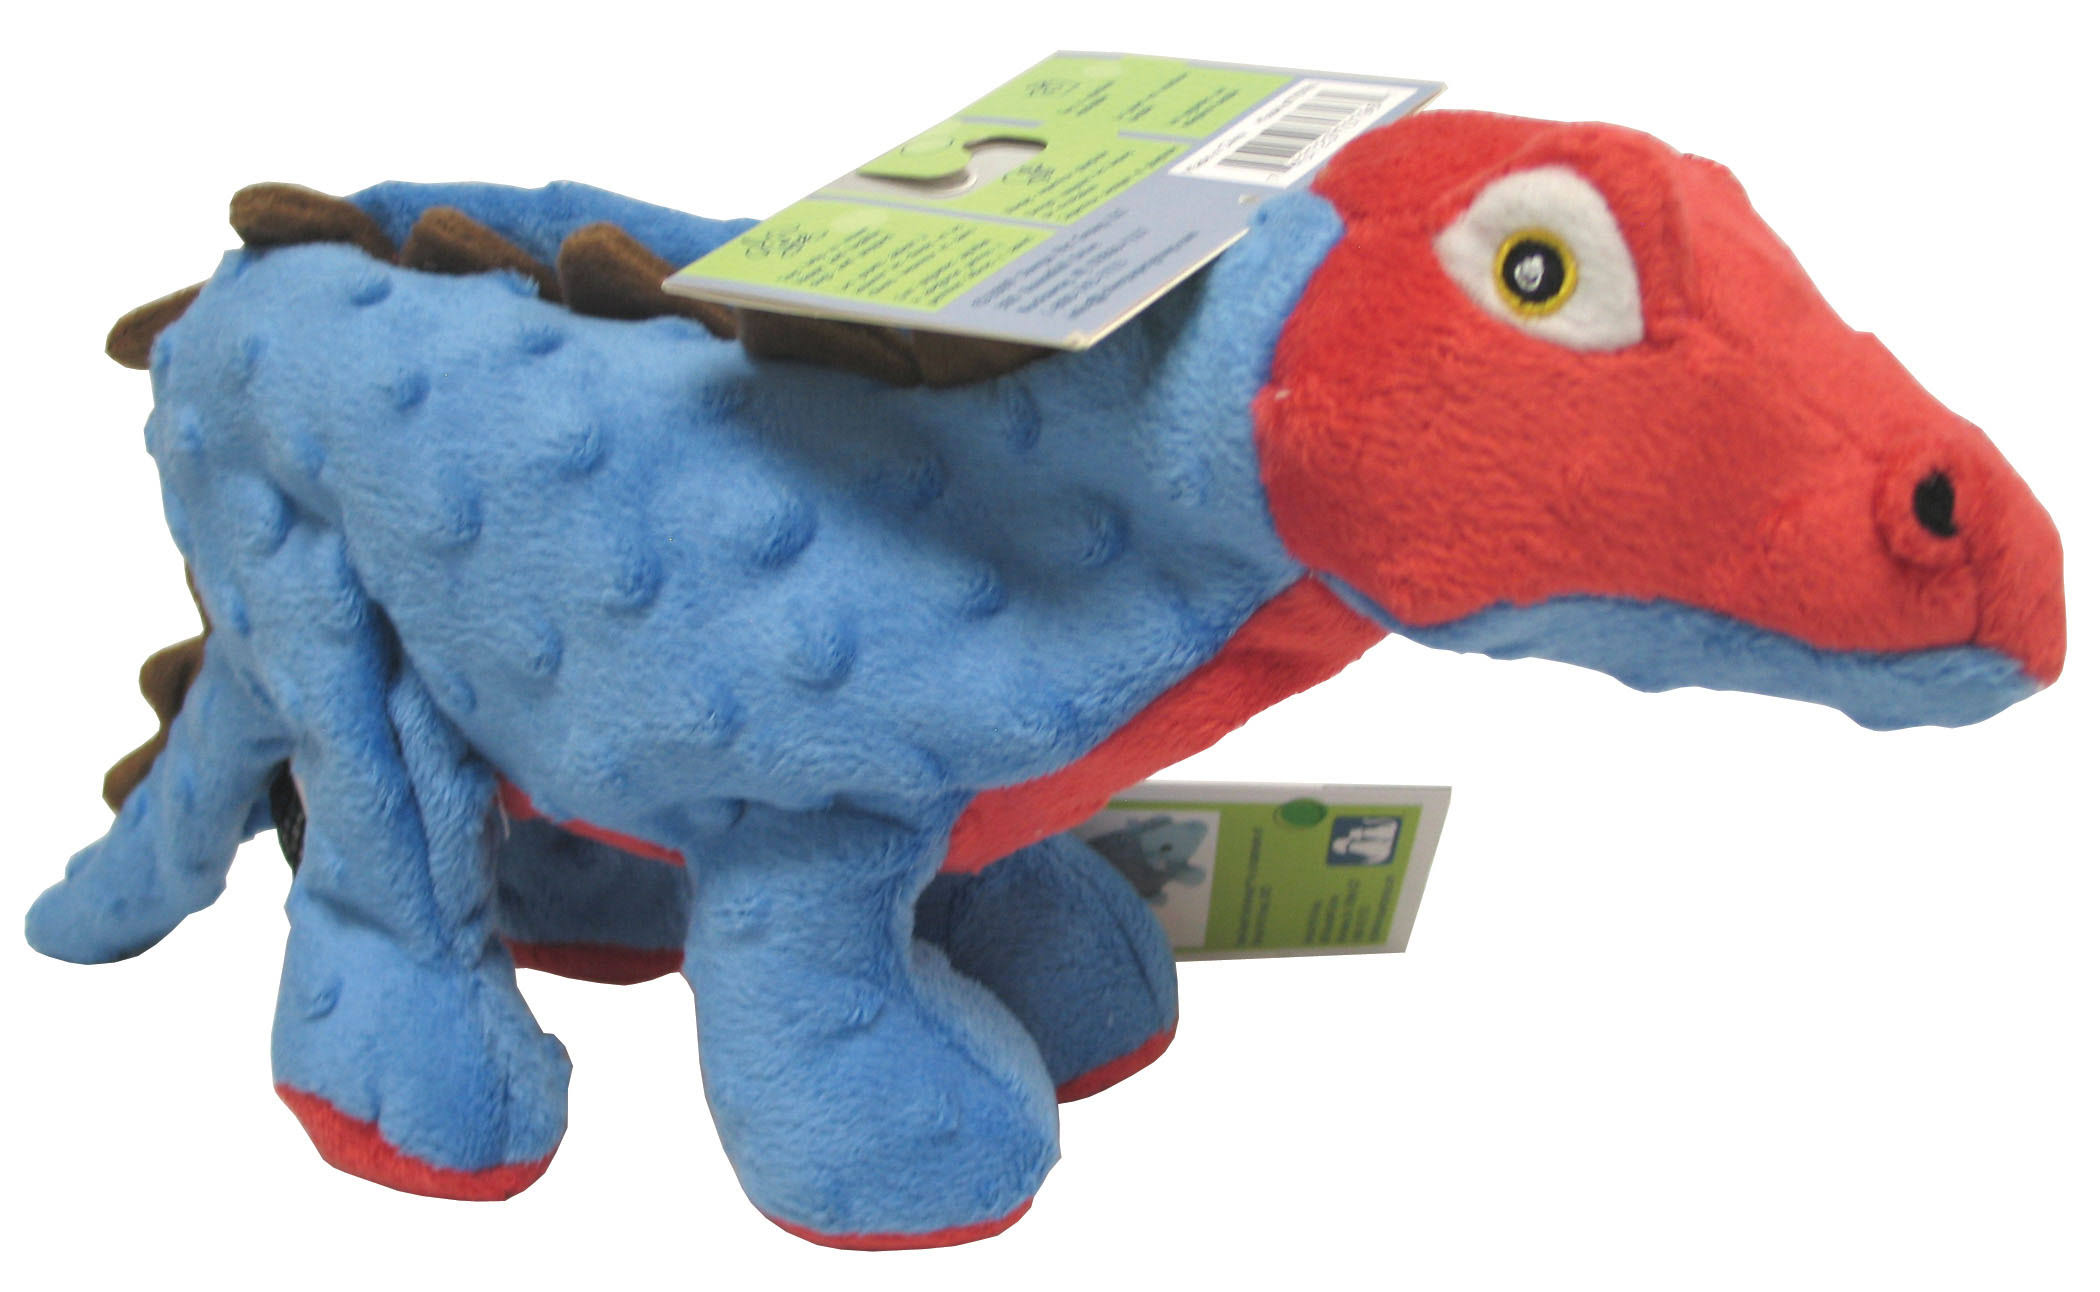 goDog Spike The Stegosaurus Dog Toy